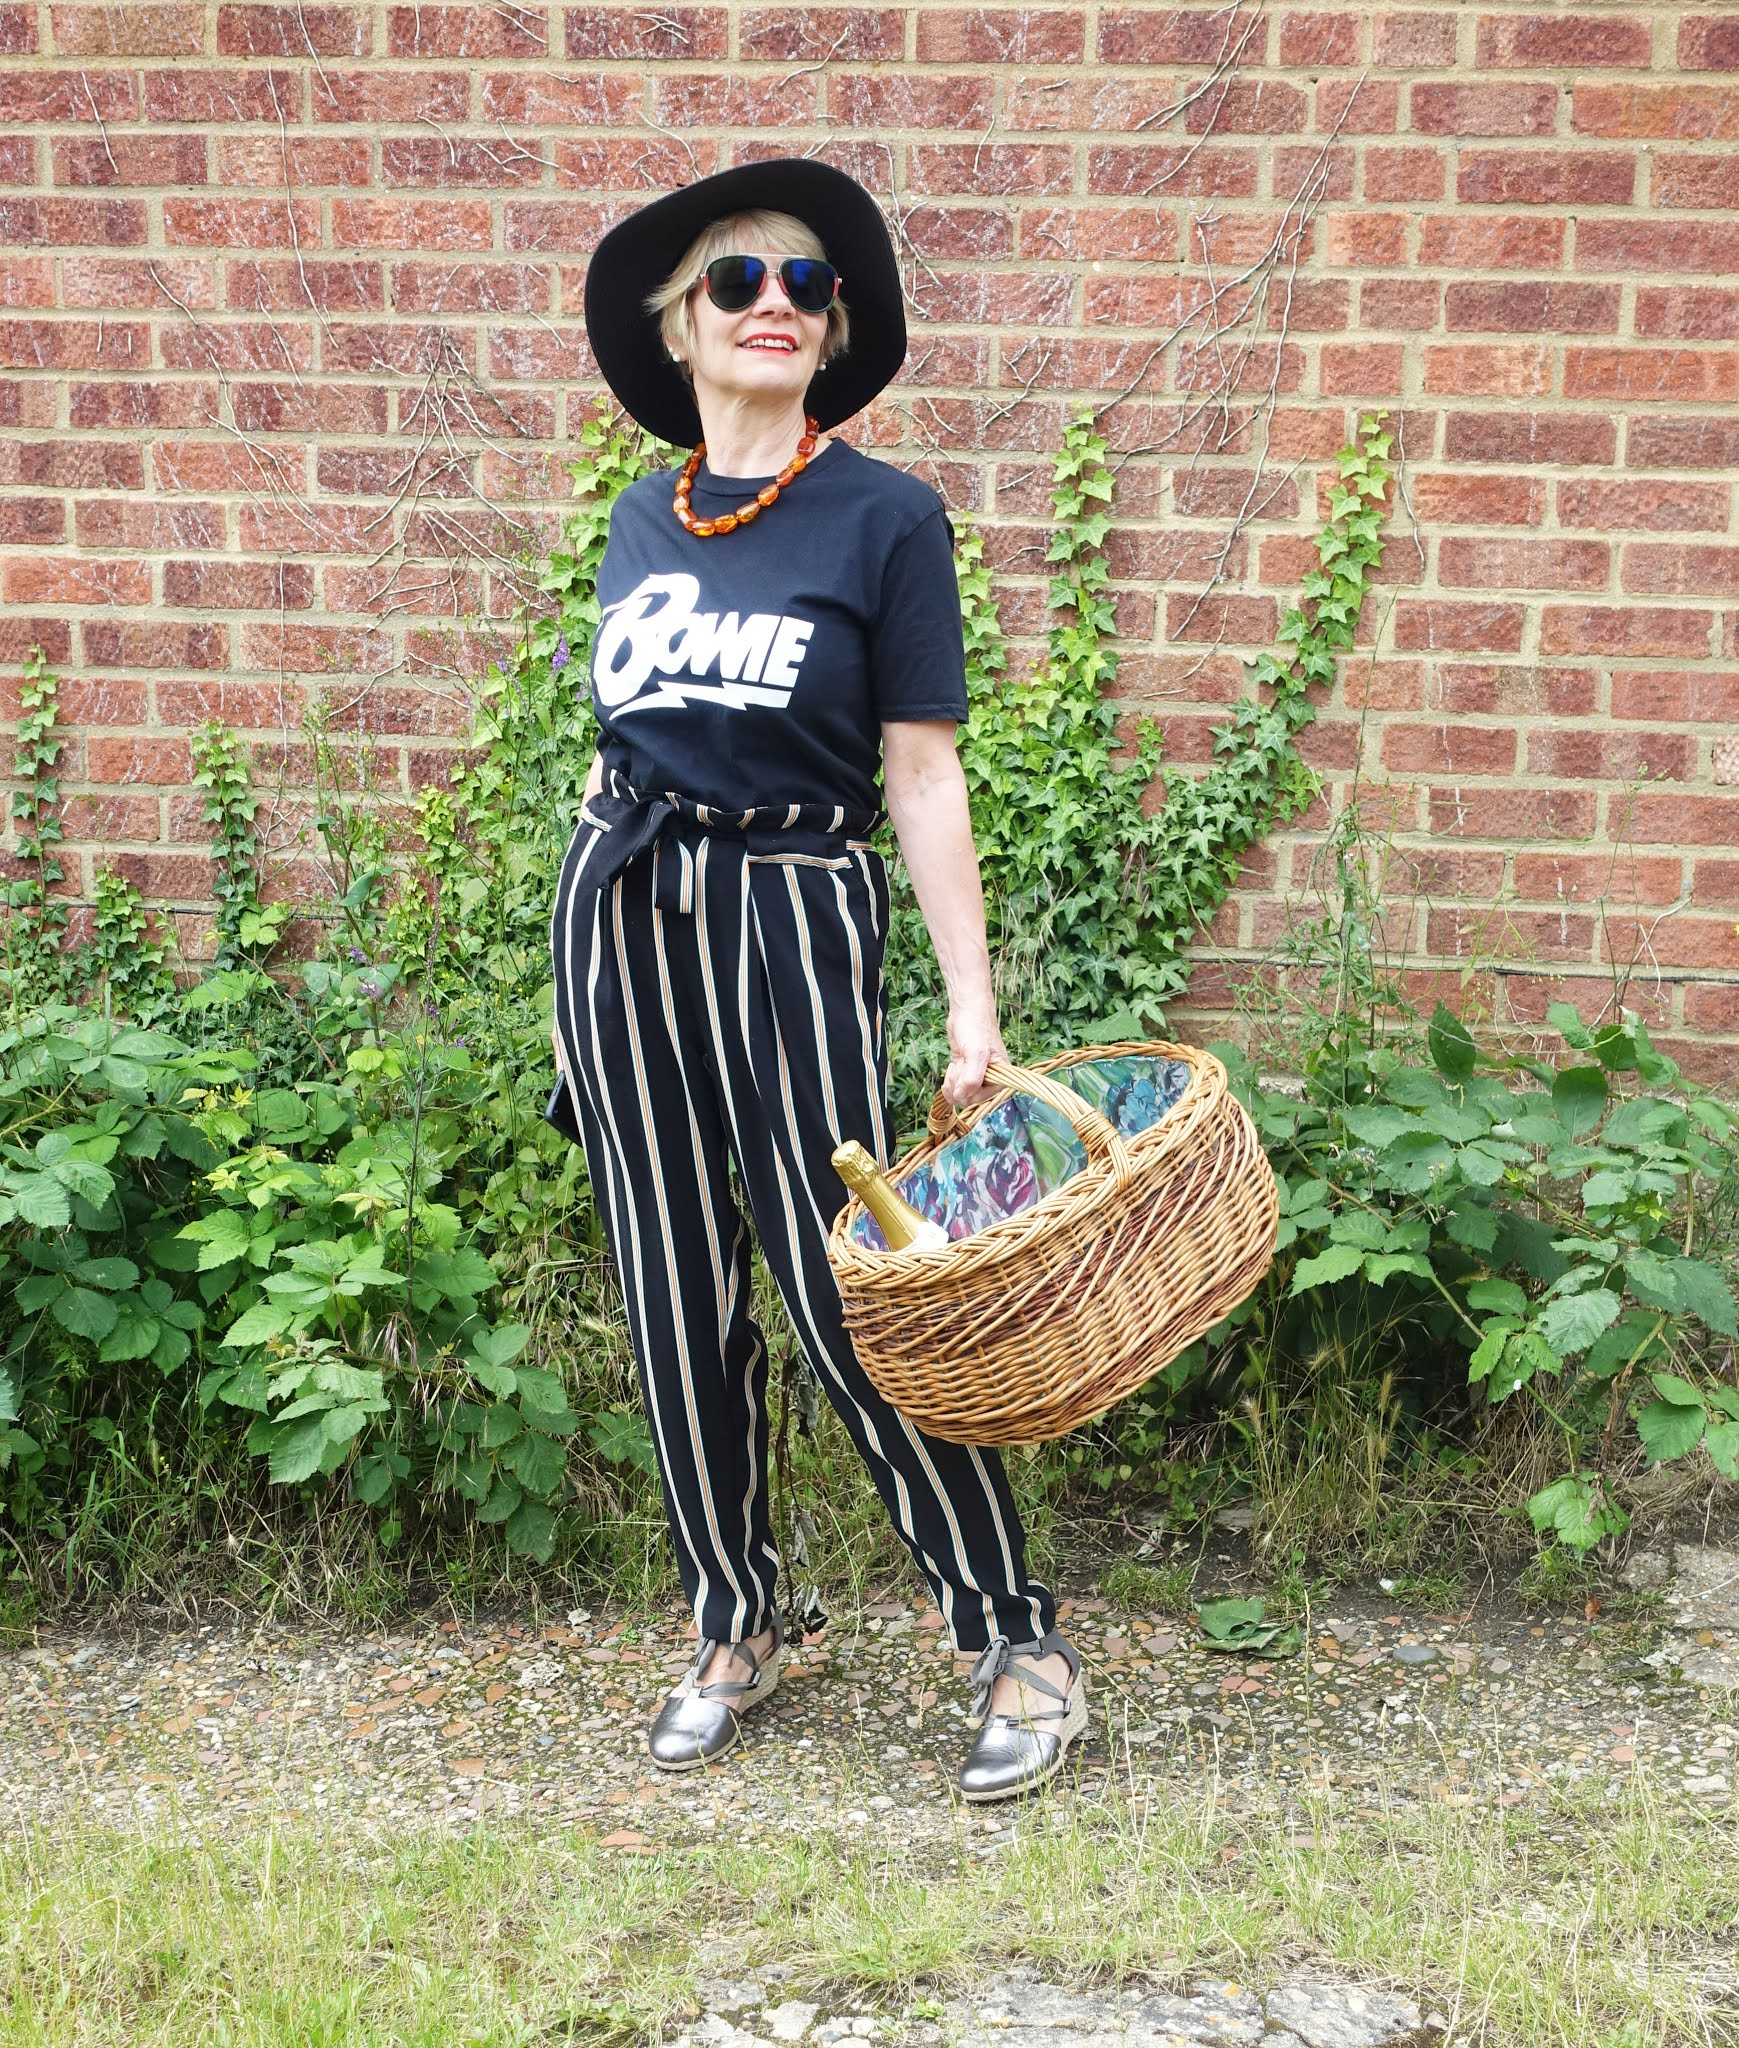 Trousers or shorts are great for a picnic where sport might be involved. Is This Mutton's Gail Hanlon is wearing striped paperbag trousers with a Bowie t-shirt, Tilley hat and Gucci prescription sunglasses